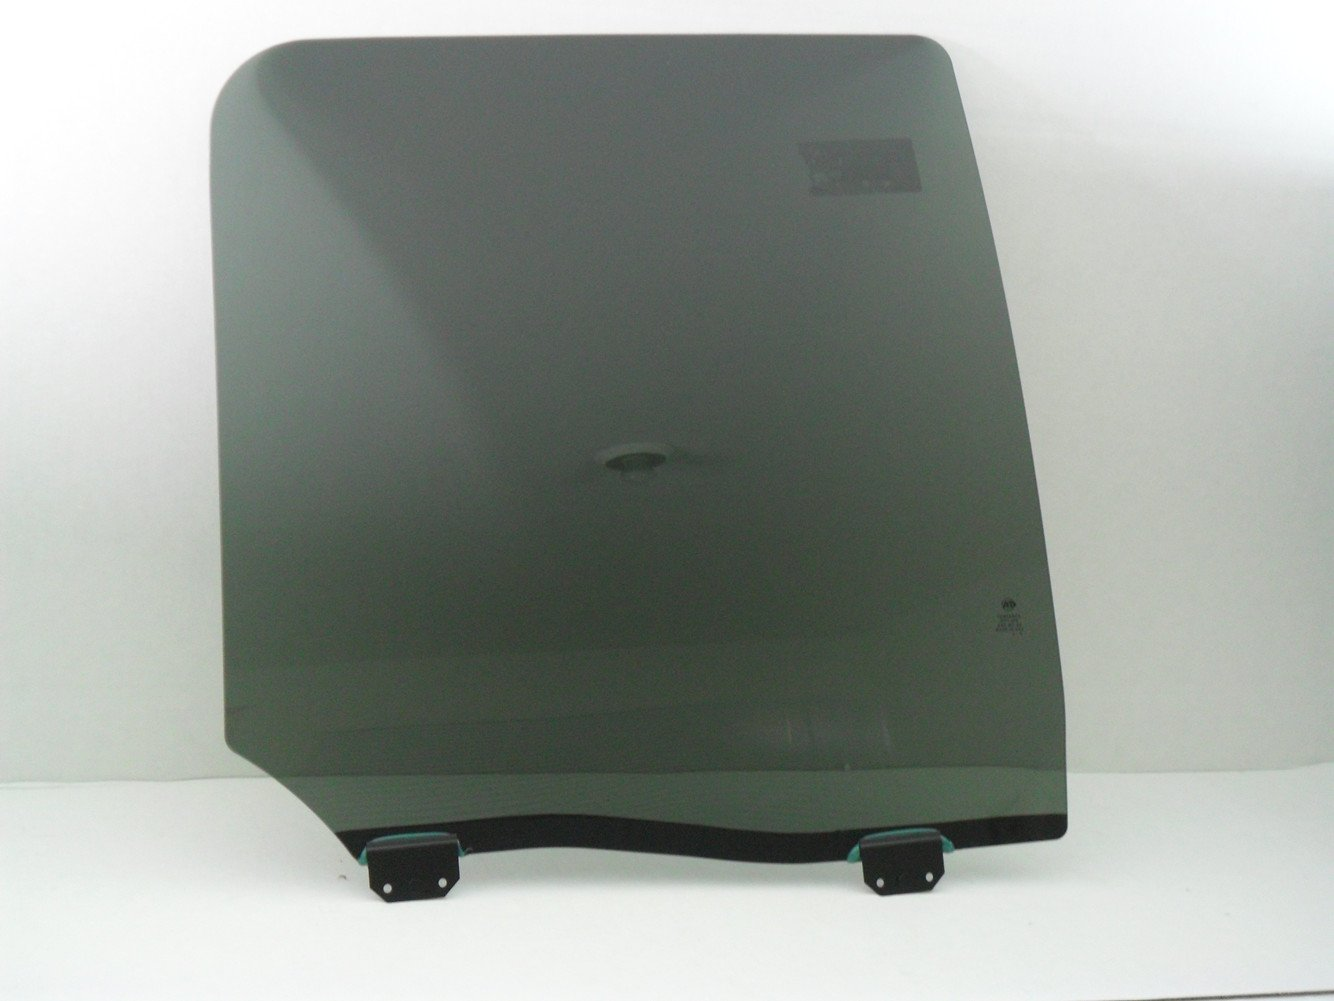 NAGD Fits 2001-2003 Ford F150,2002 Lincoln Blackwood 4 Door Crew Cab Passenger Right Side Rear Door Window Glass DD9747YPY